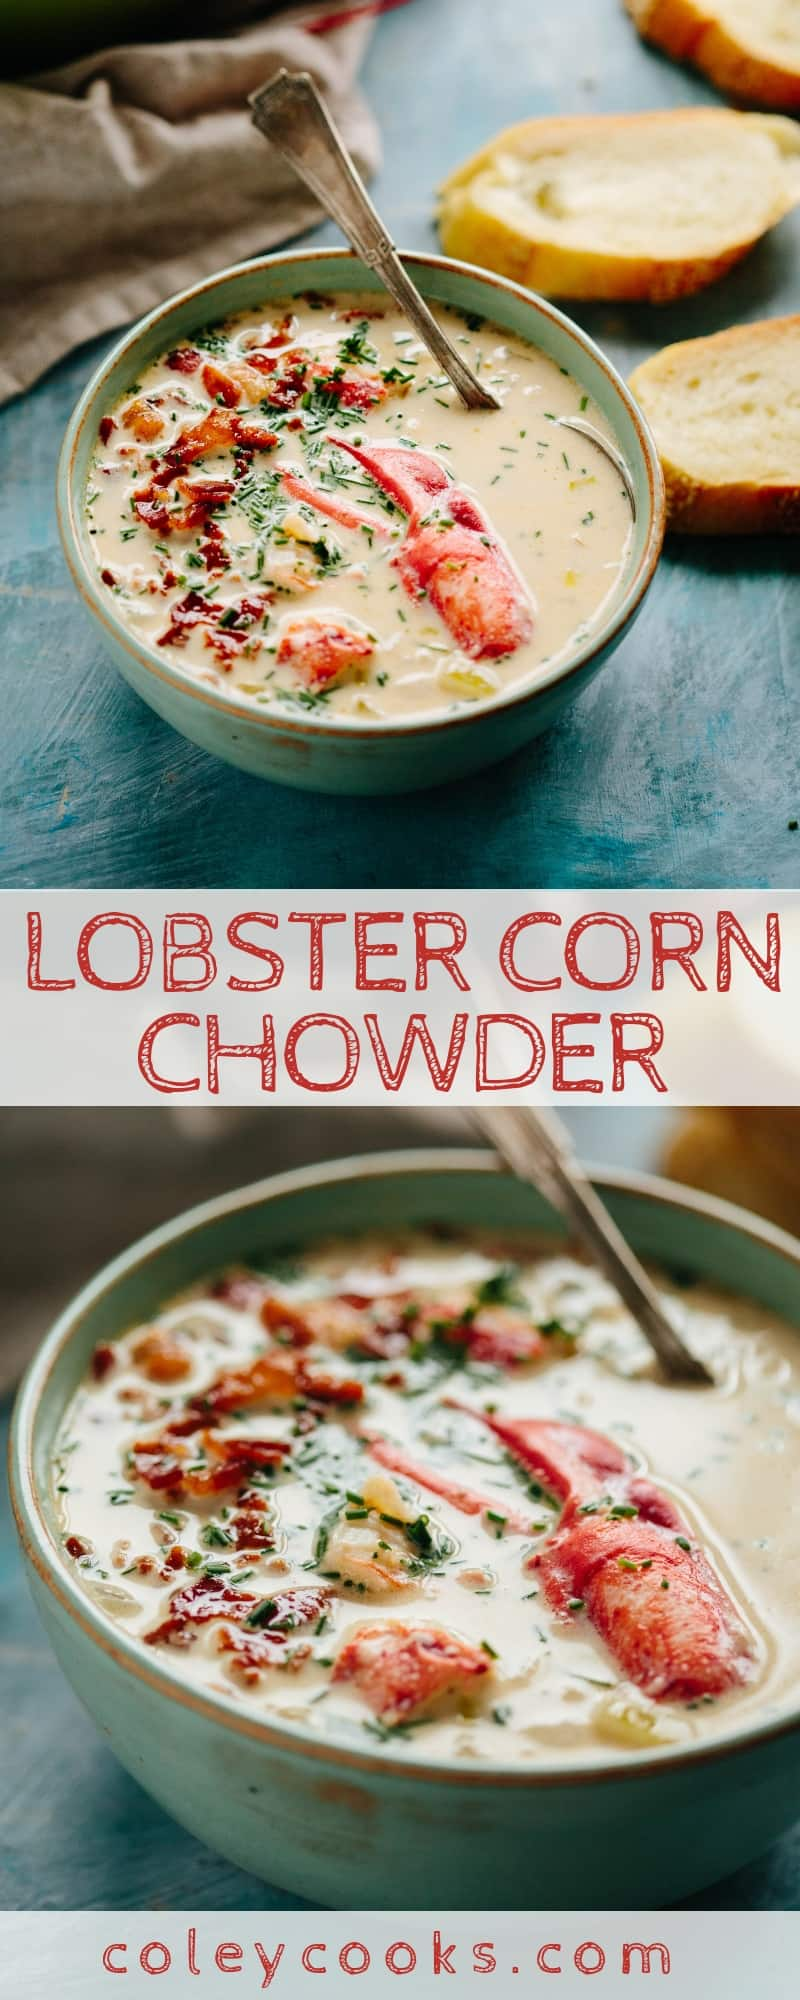 LOBSTER CORN CHOWDER | This recipe for lobster corn chowder is the perfect way to usher in fall. It's rich, flavorful and loaded with big chunks of lobster meat. #soup #lobster #corn #chowder #recipe #seafood | ColeyCooks.com